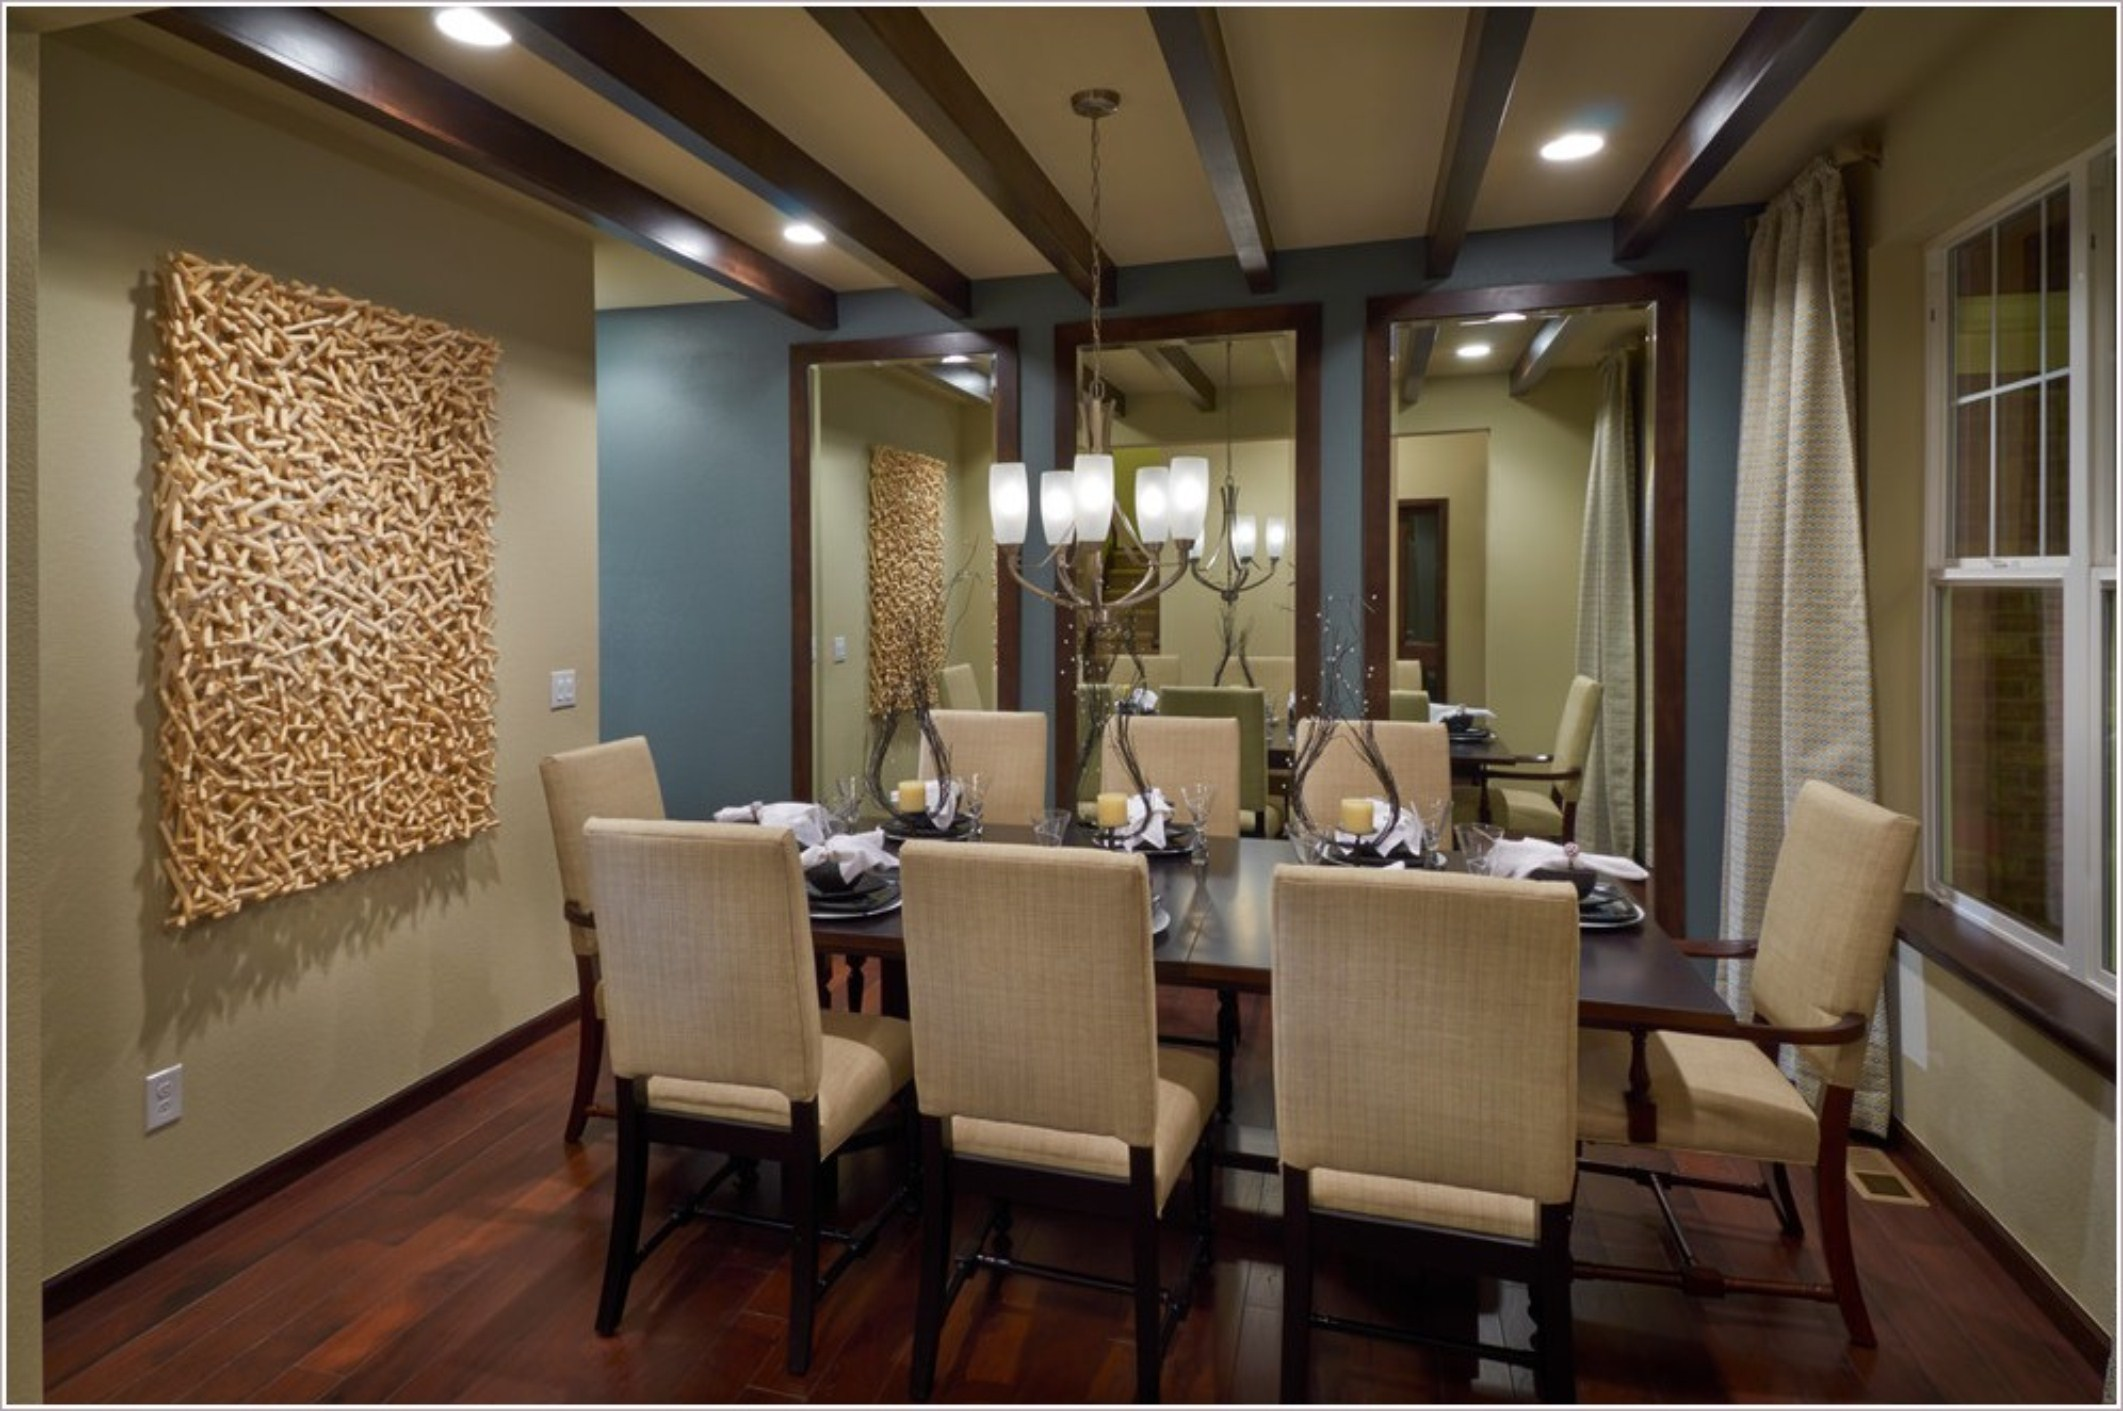 Exquisite Formal Dining Room Sets With Buffet And Ceiling Light For